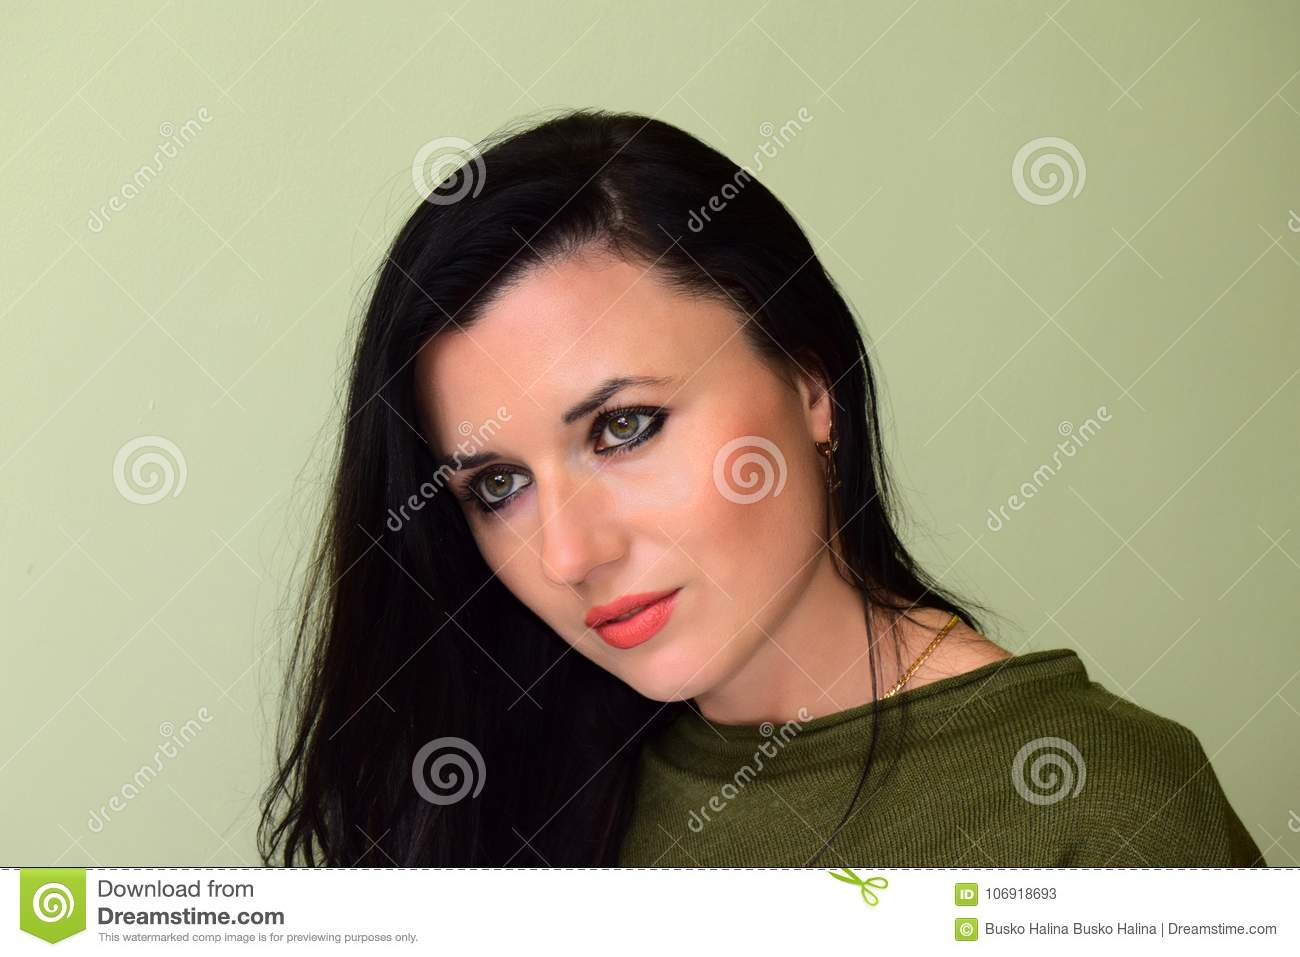 The Woman Has Green Eyes And Black Hair Stock Image Image Of Lips